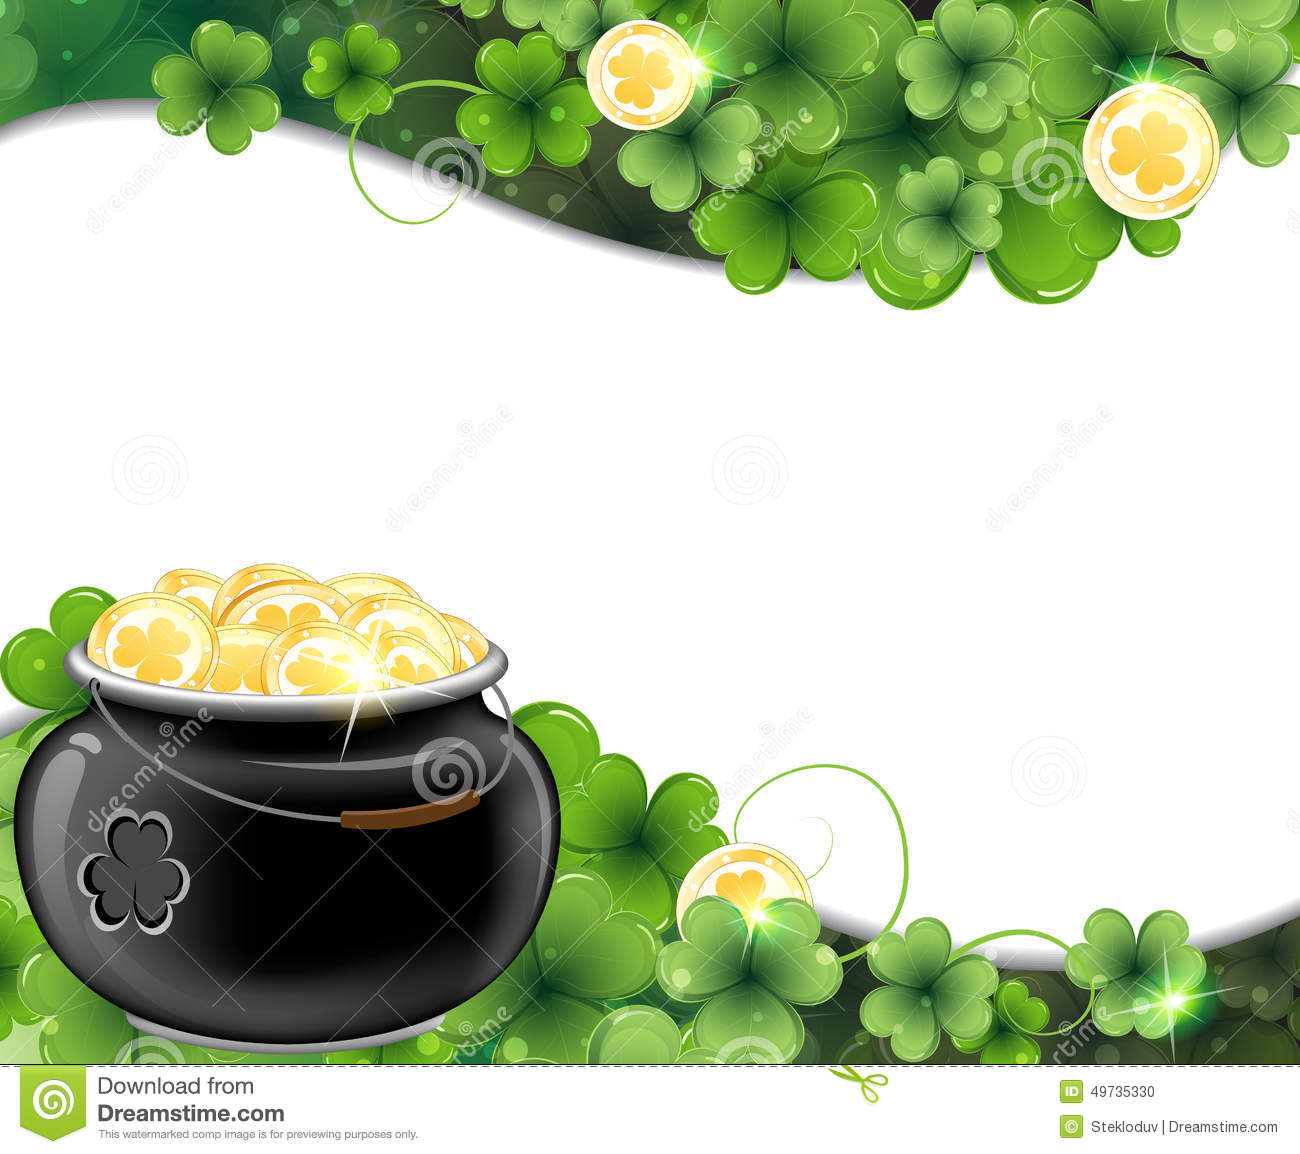 Leprechaun pot on clover and gold coins. St. Patrick's Day background.